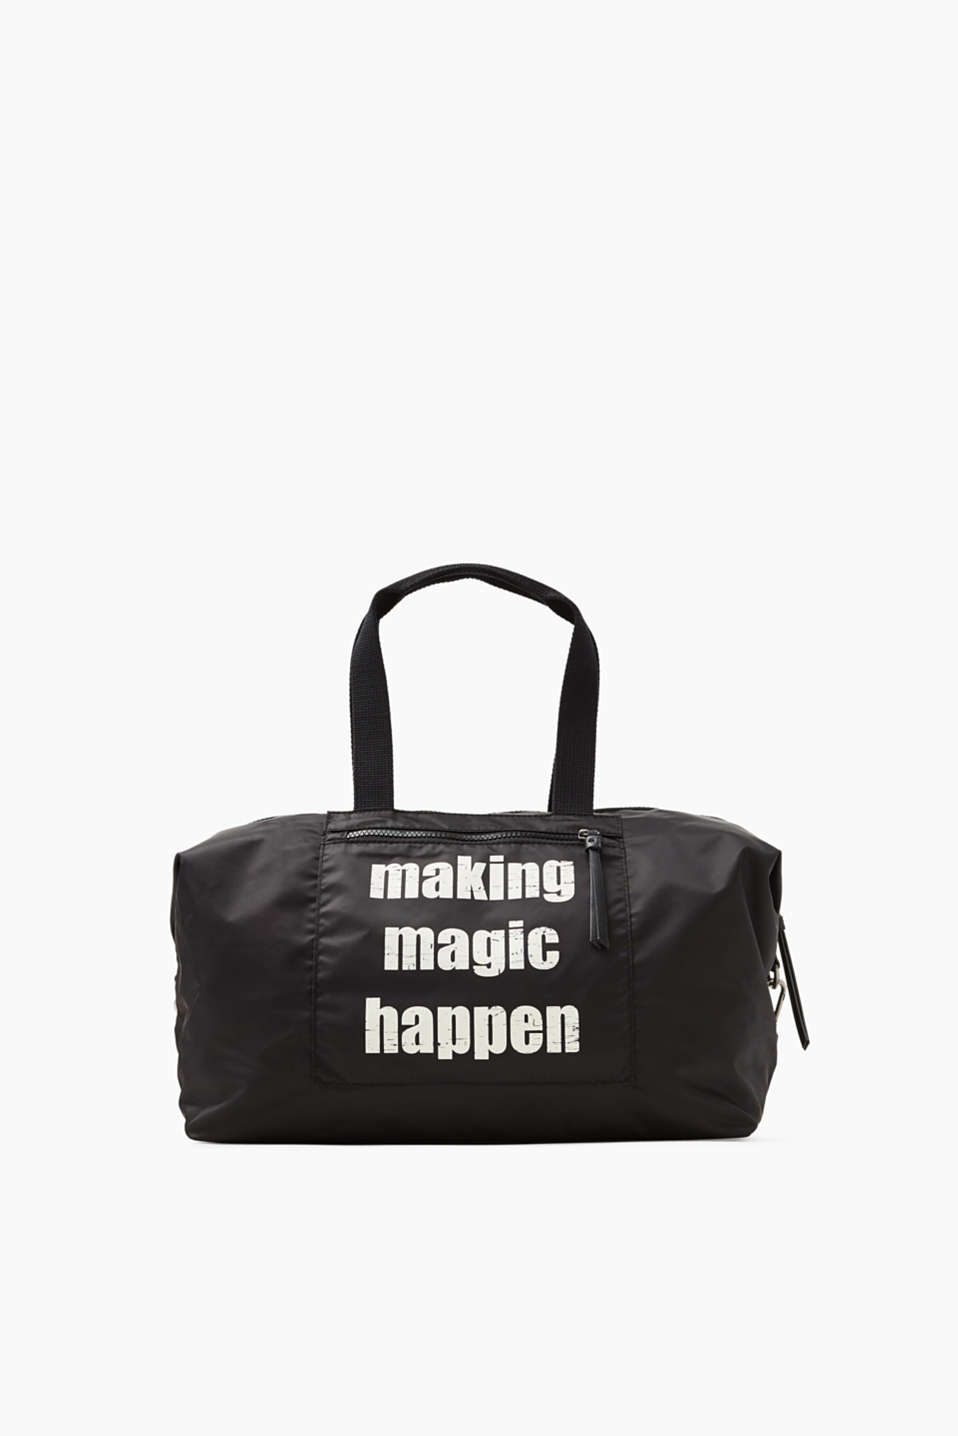 Making magic happen! The lightweight nylon and cool statement make this carry-all bag something a little bit special.